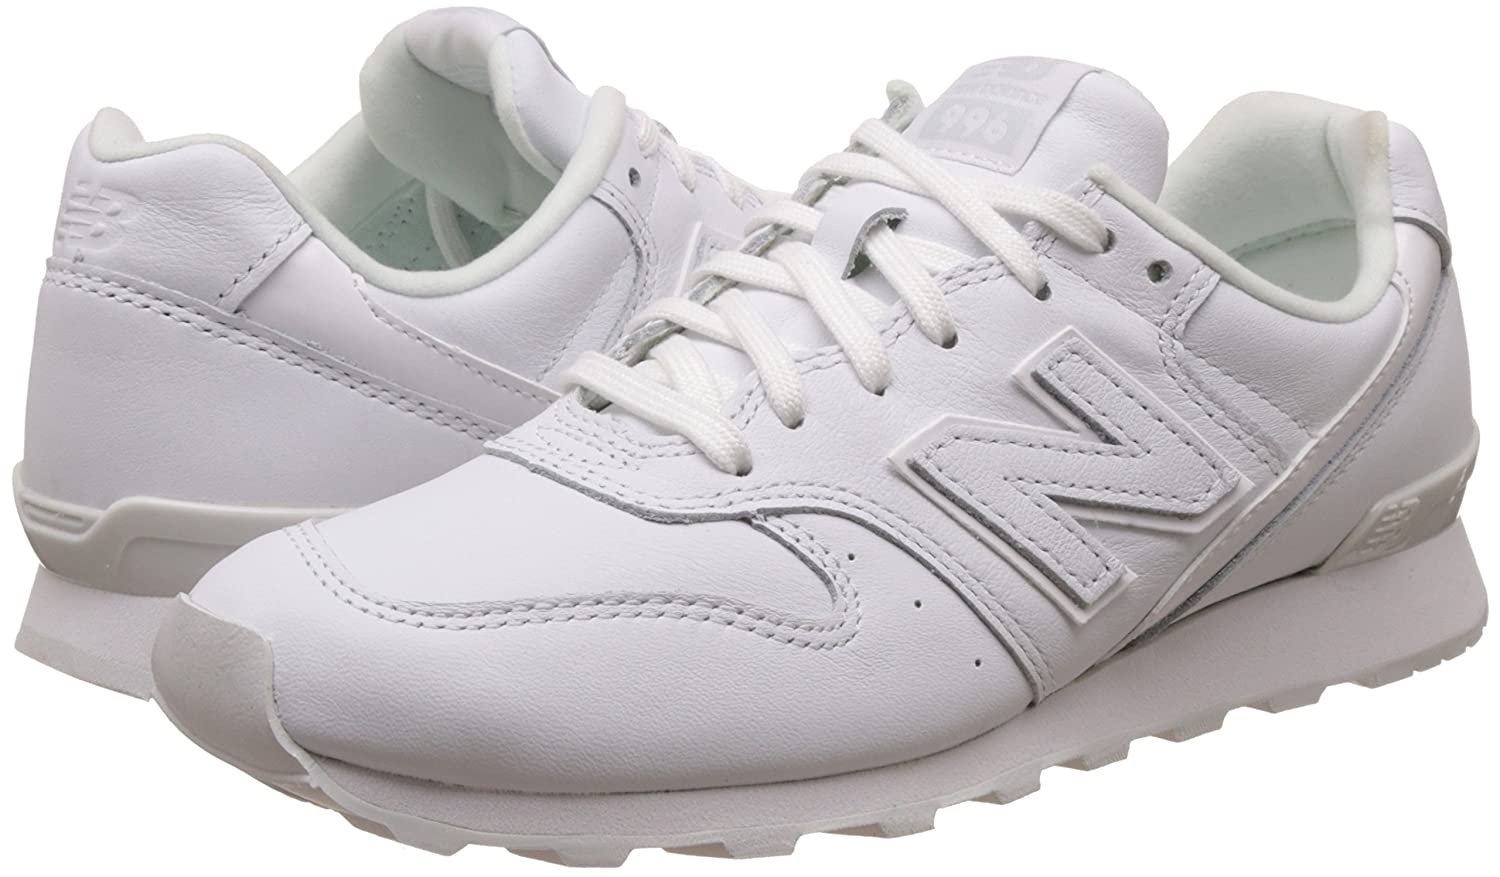 wholesale dealer 8c4f9 c96bd Amazon.com: New Balance Wr996 Heritage Womens Trainers White ...